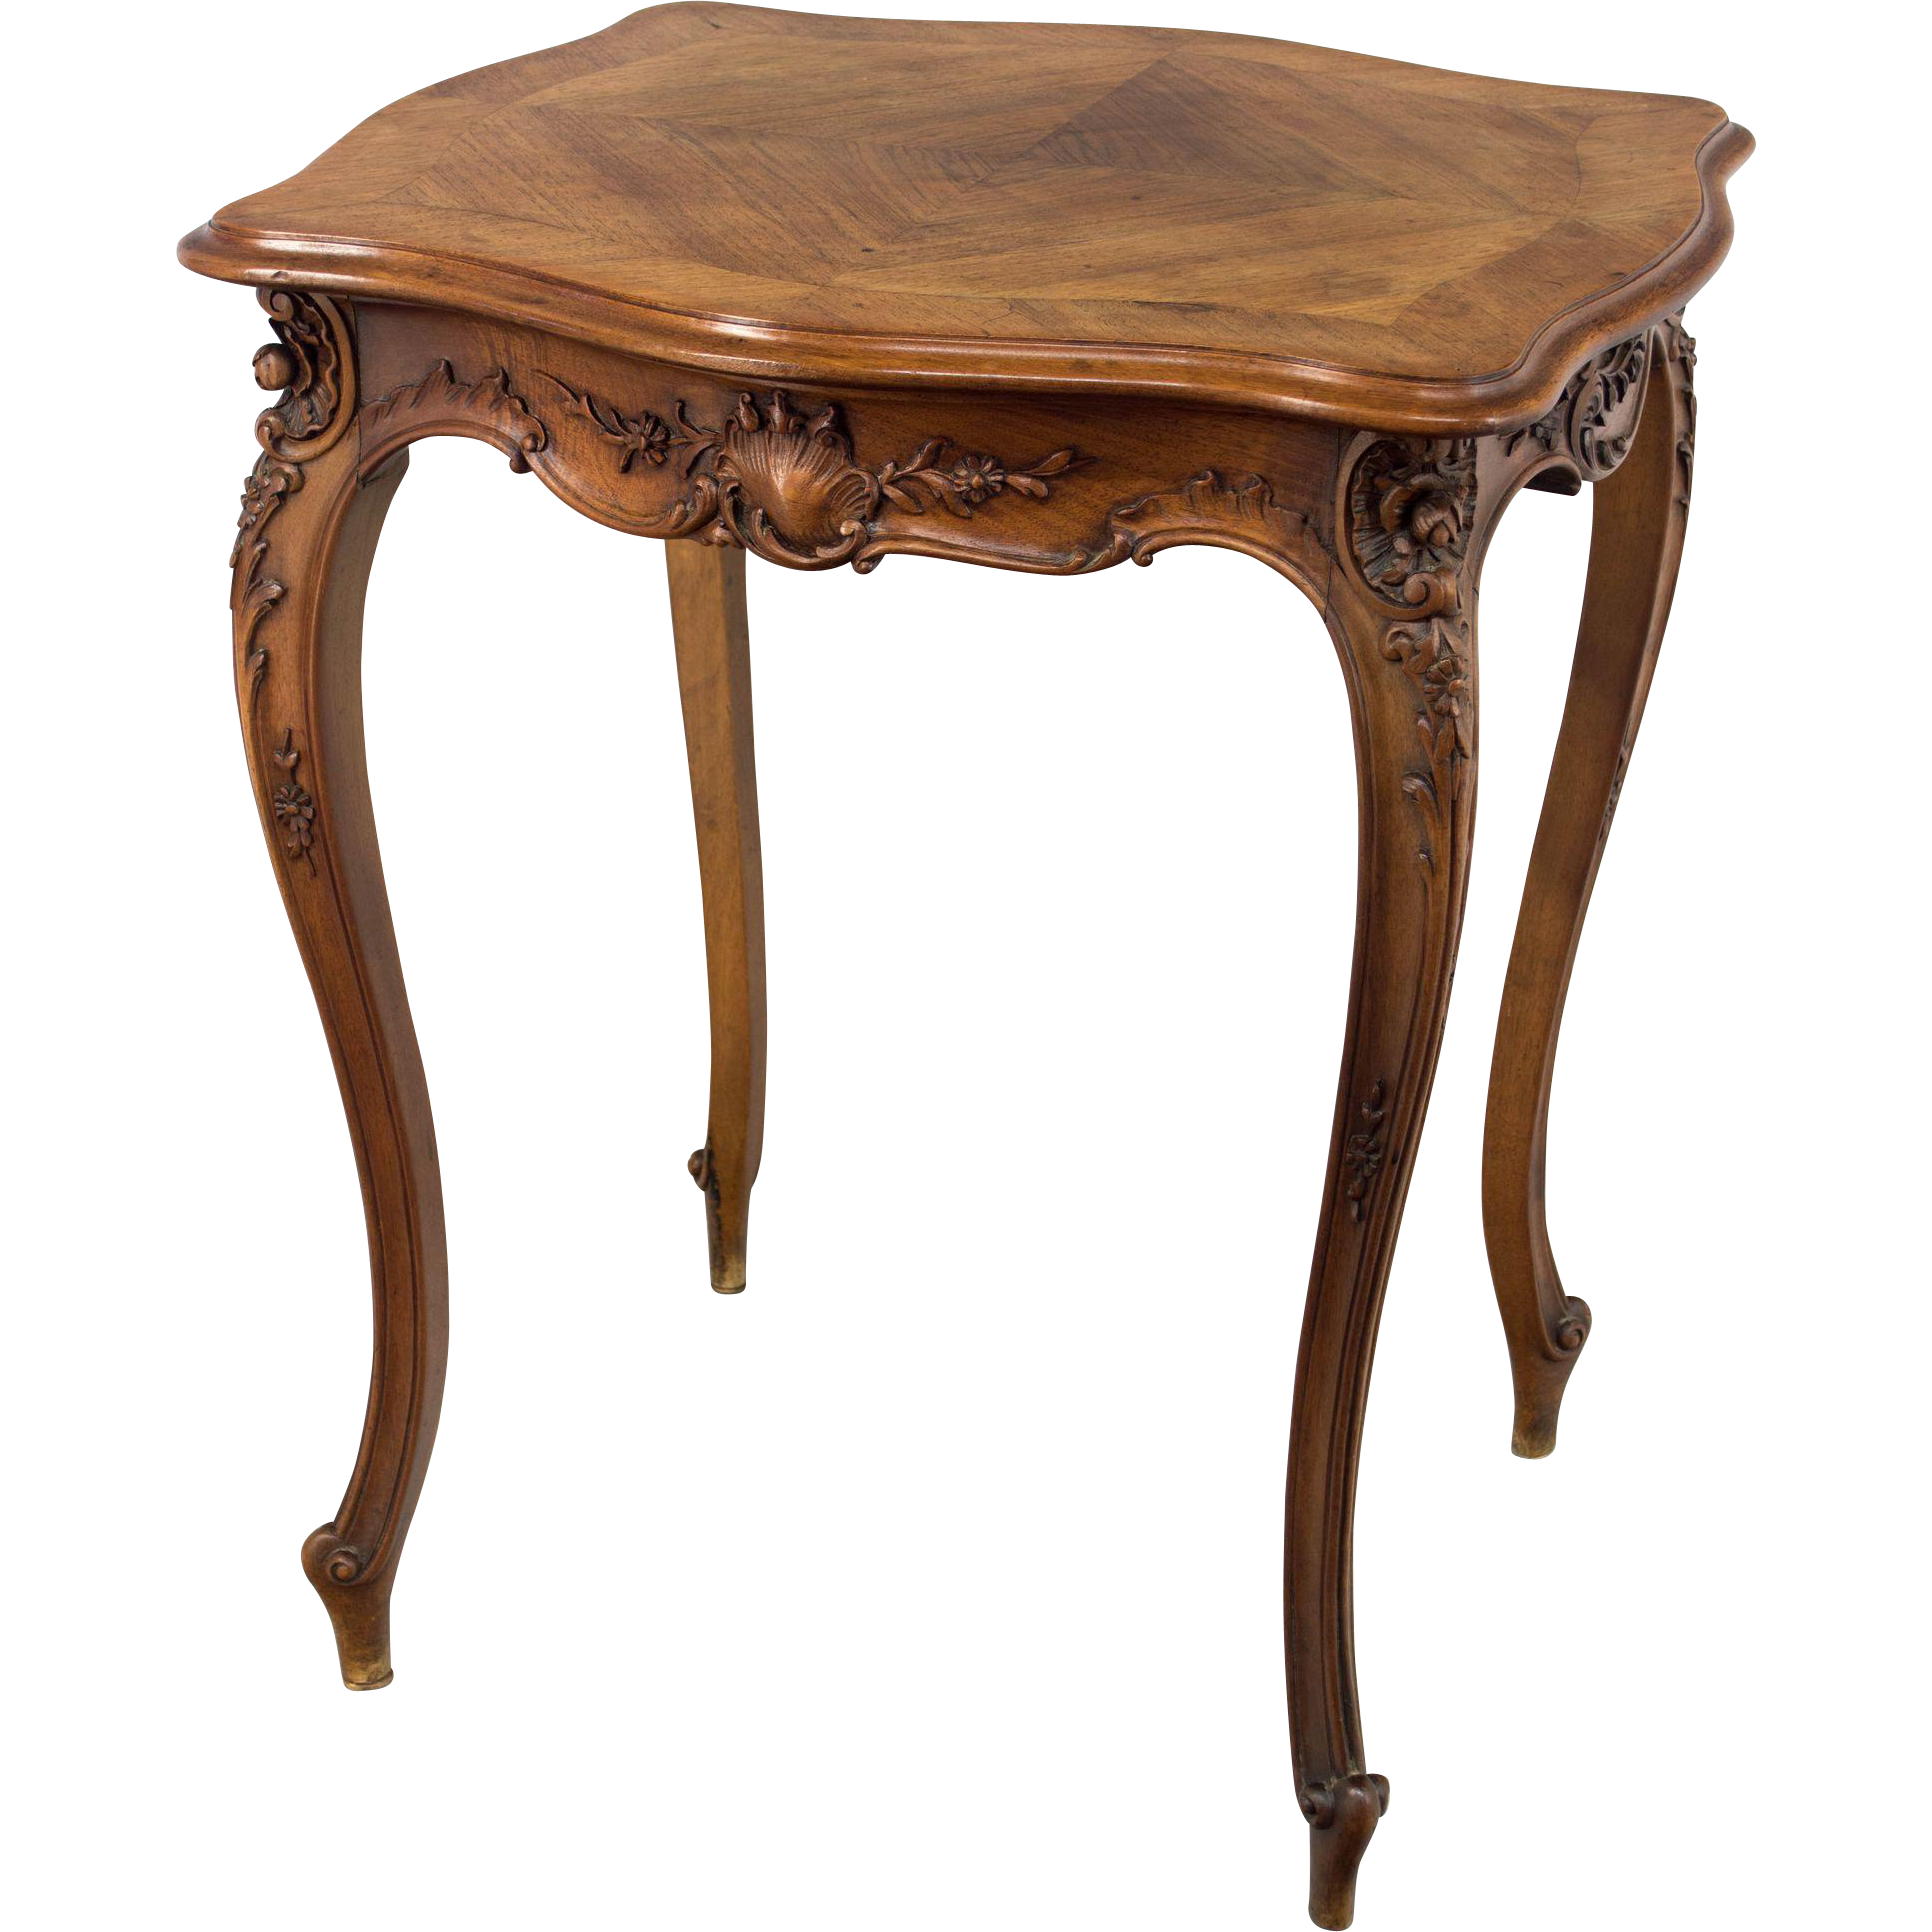 Louis xv style side table sold on ruby lane - Table style louis xv ...